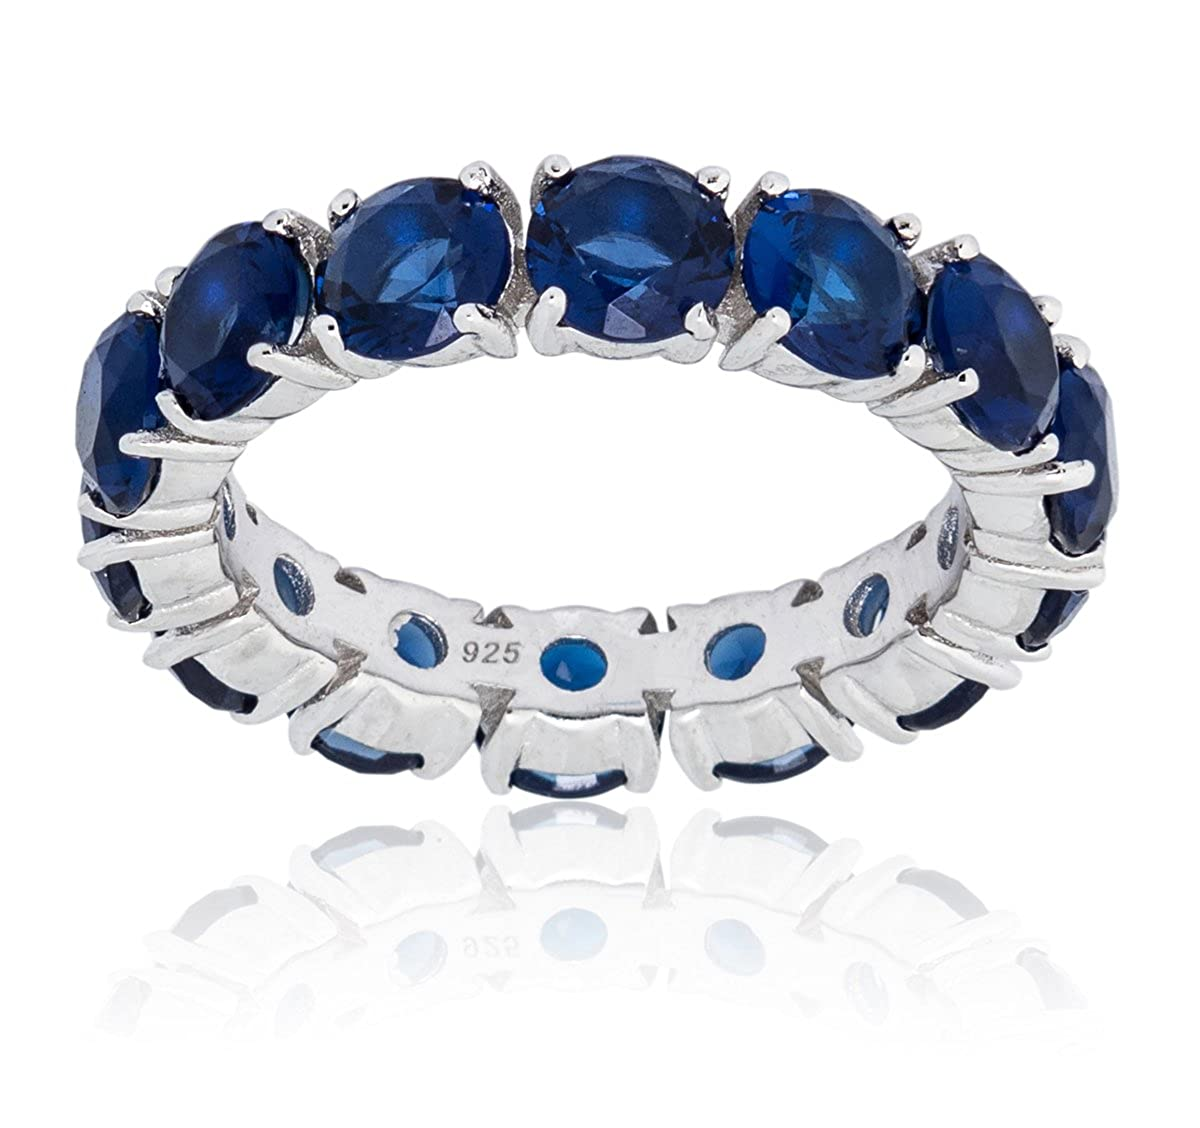 Mia Sarine Round Simulated Blue Sapphire Eternity Band Ring for Women in Rhodium Plated Brass, (See More Sizes) Nes Jewelry NRB403278R-ZSP-Parent